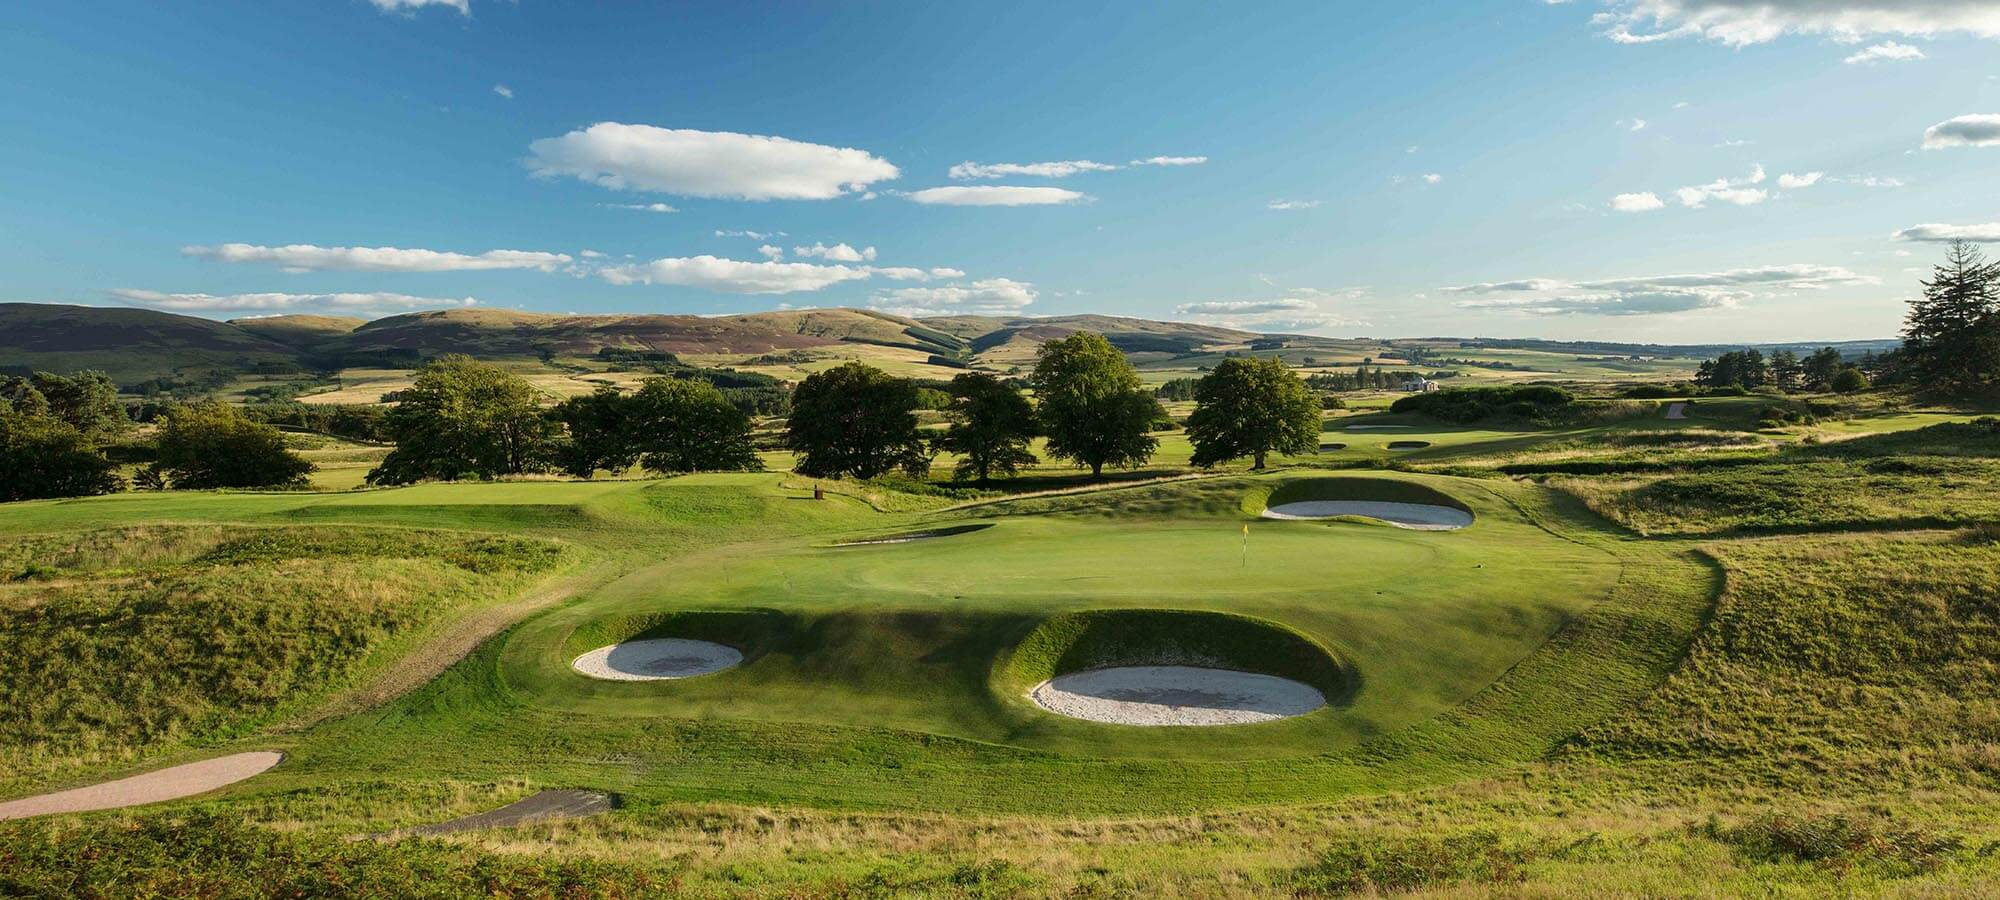 http://Wide%20views%20and%20blue%20skies%20over%20the%20Kings%20course%20at%20Gleneagles